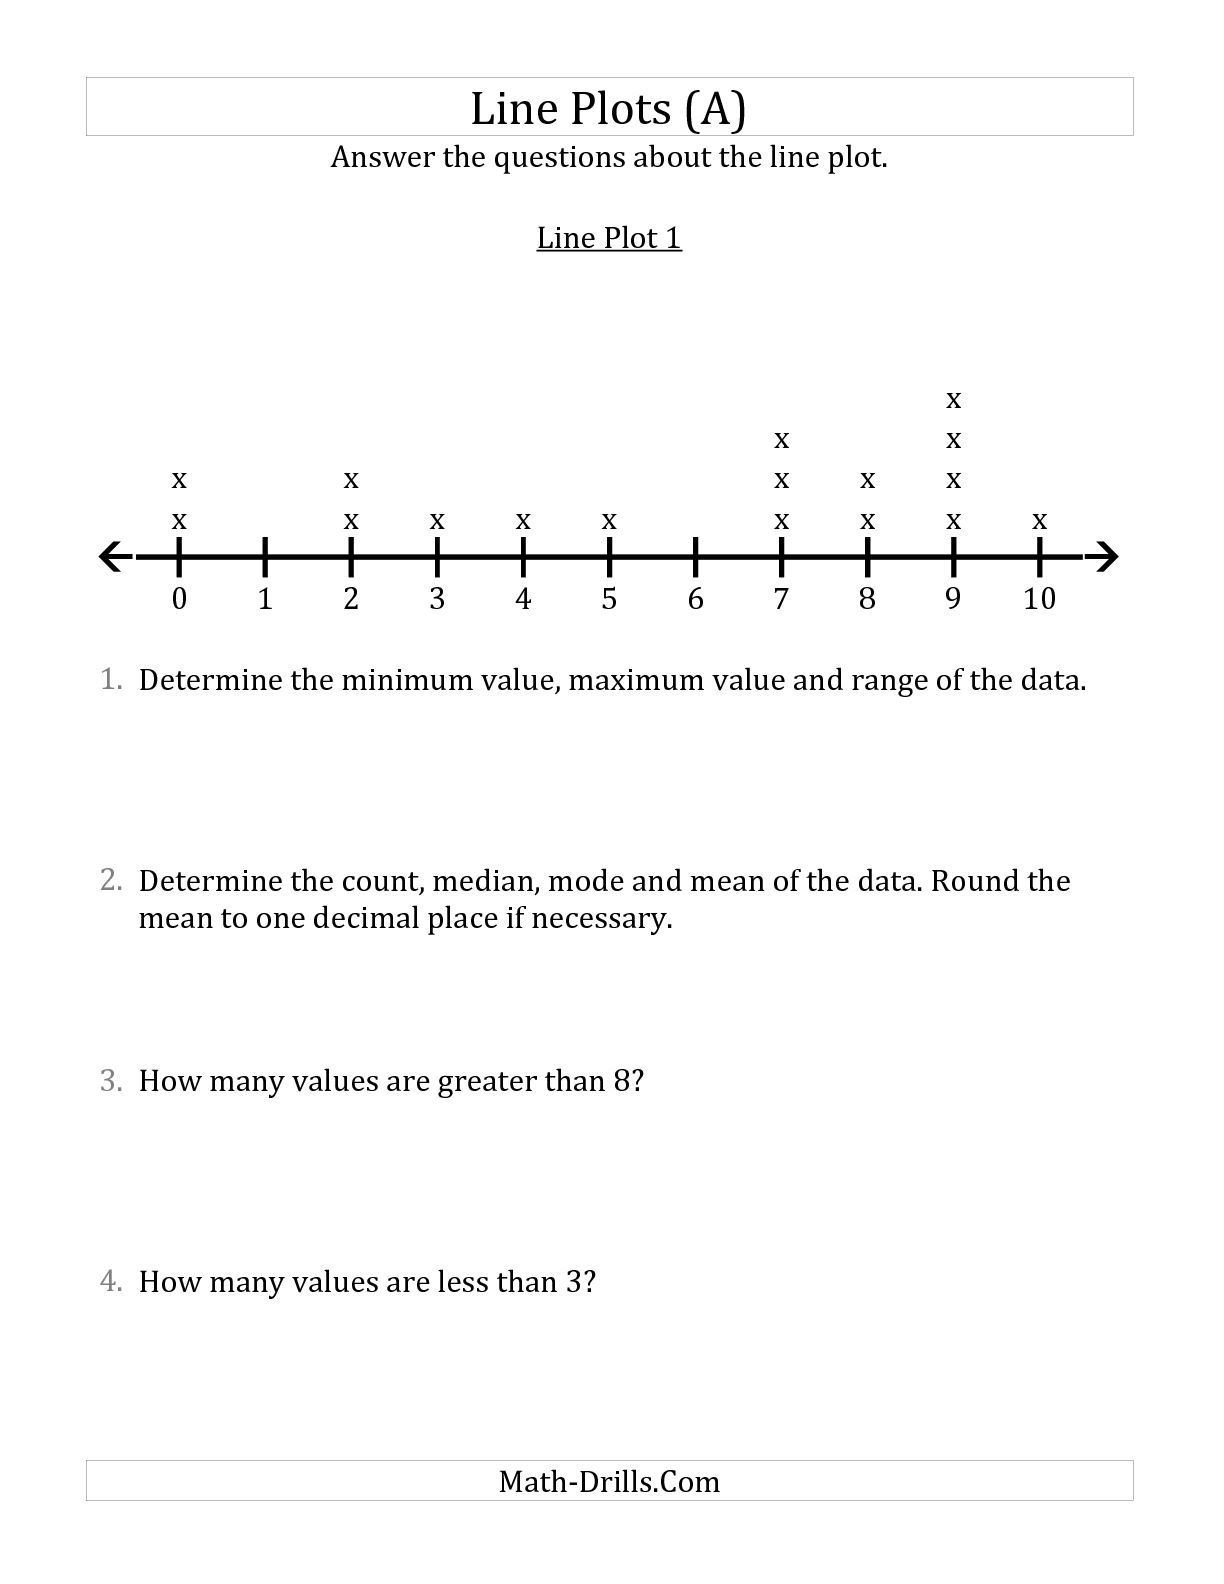 Line Graph Worksheet 5th Grade the Questions About Line Plots with Smaller Data Sets and